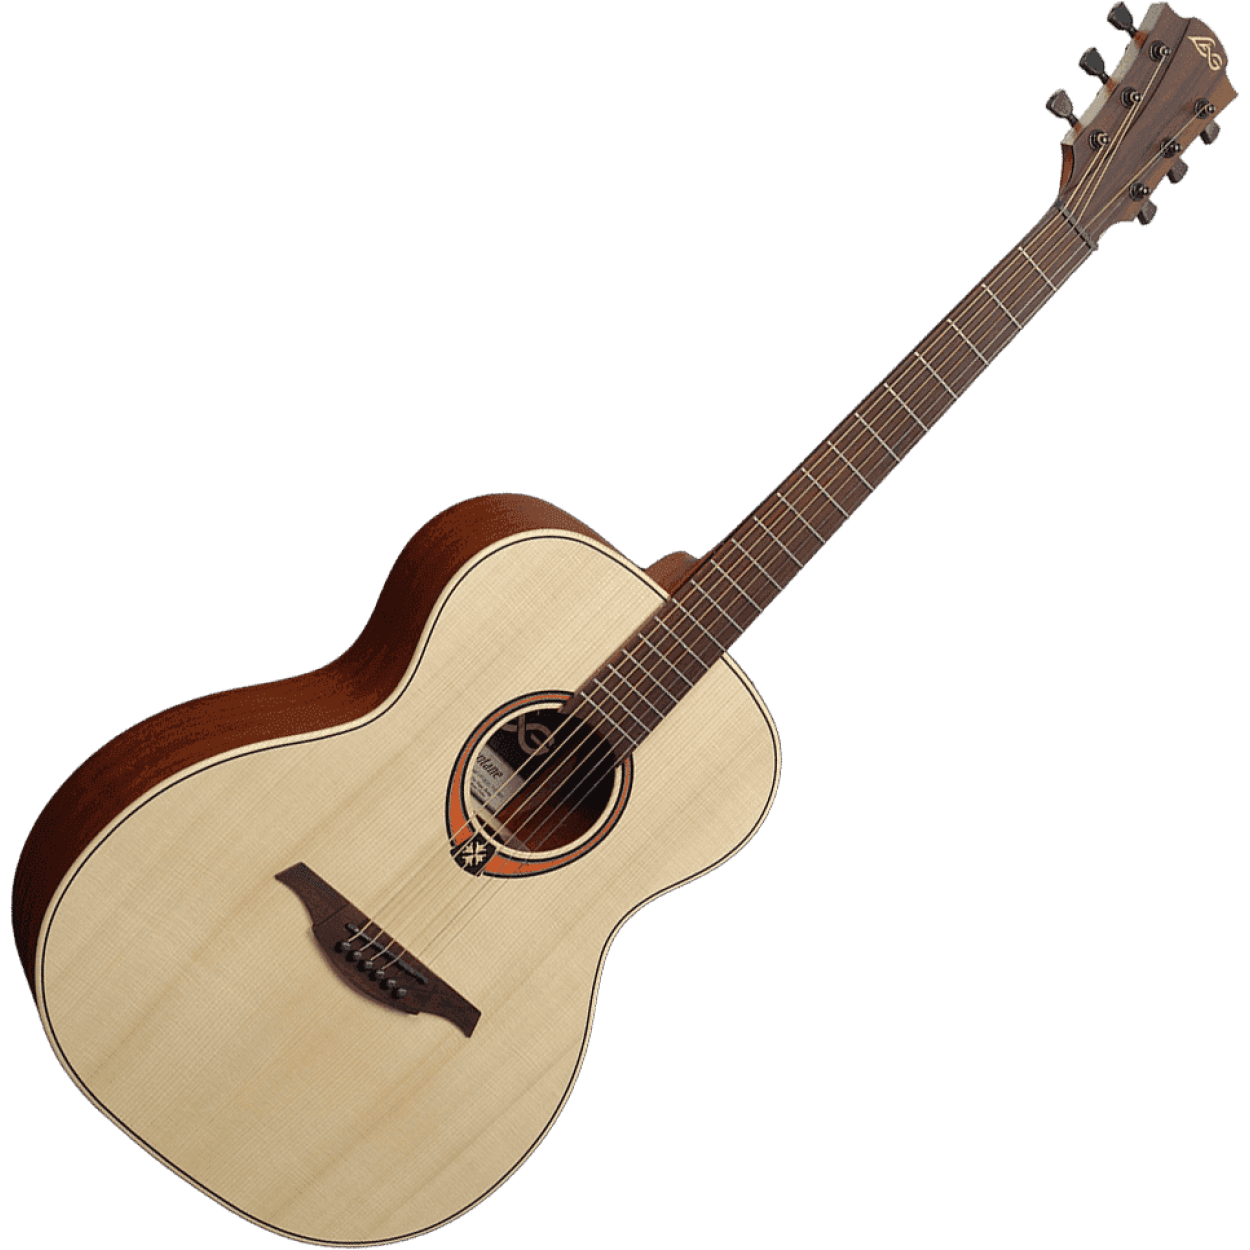 Lag T70A Acoustic Guitar available at Penarth Music Centre